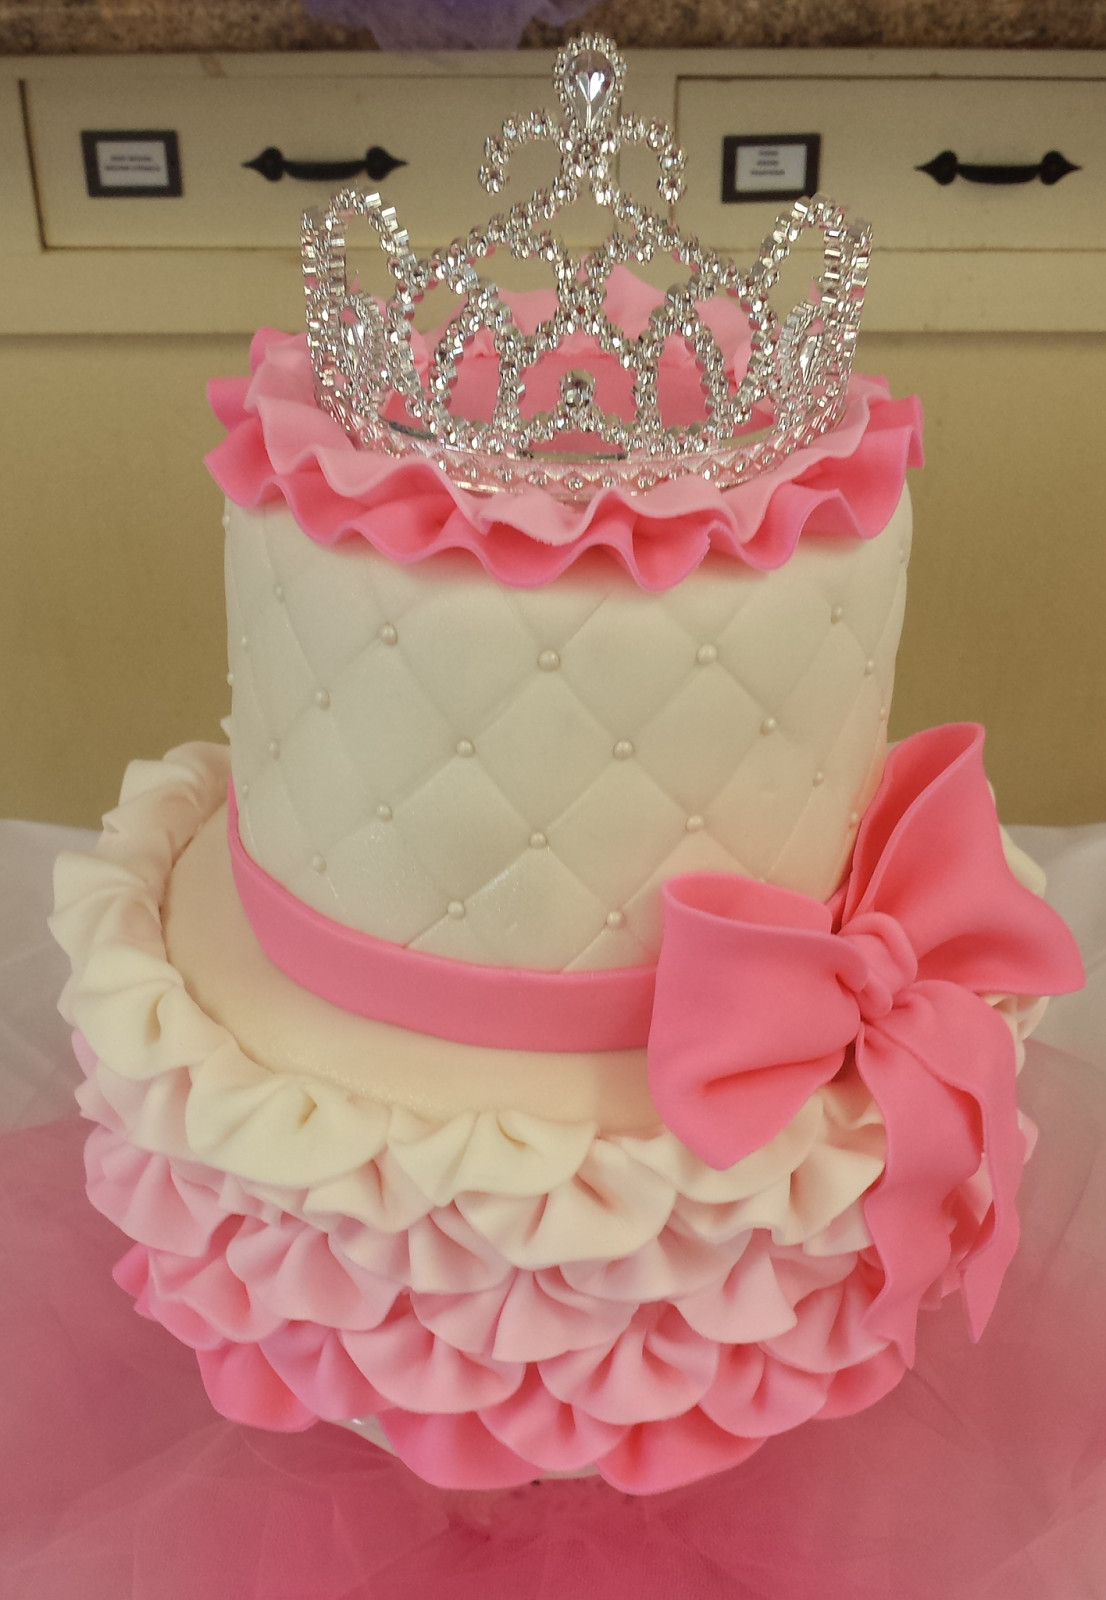 Best ideas about Princess Birthday Cake . Save or Pin Cake Blog Princess Cake Tutorial Now.